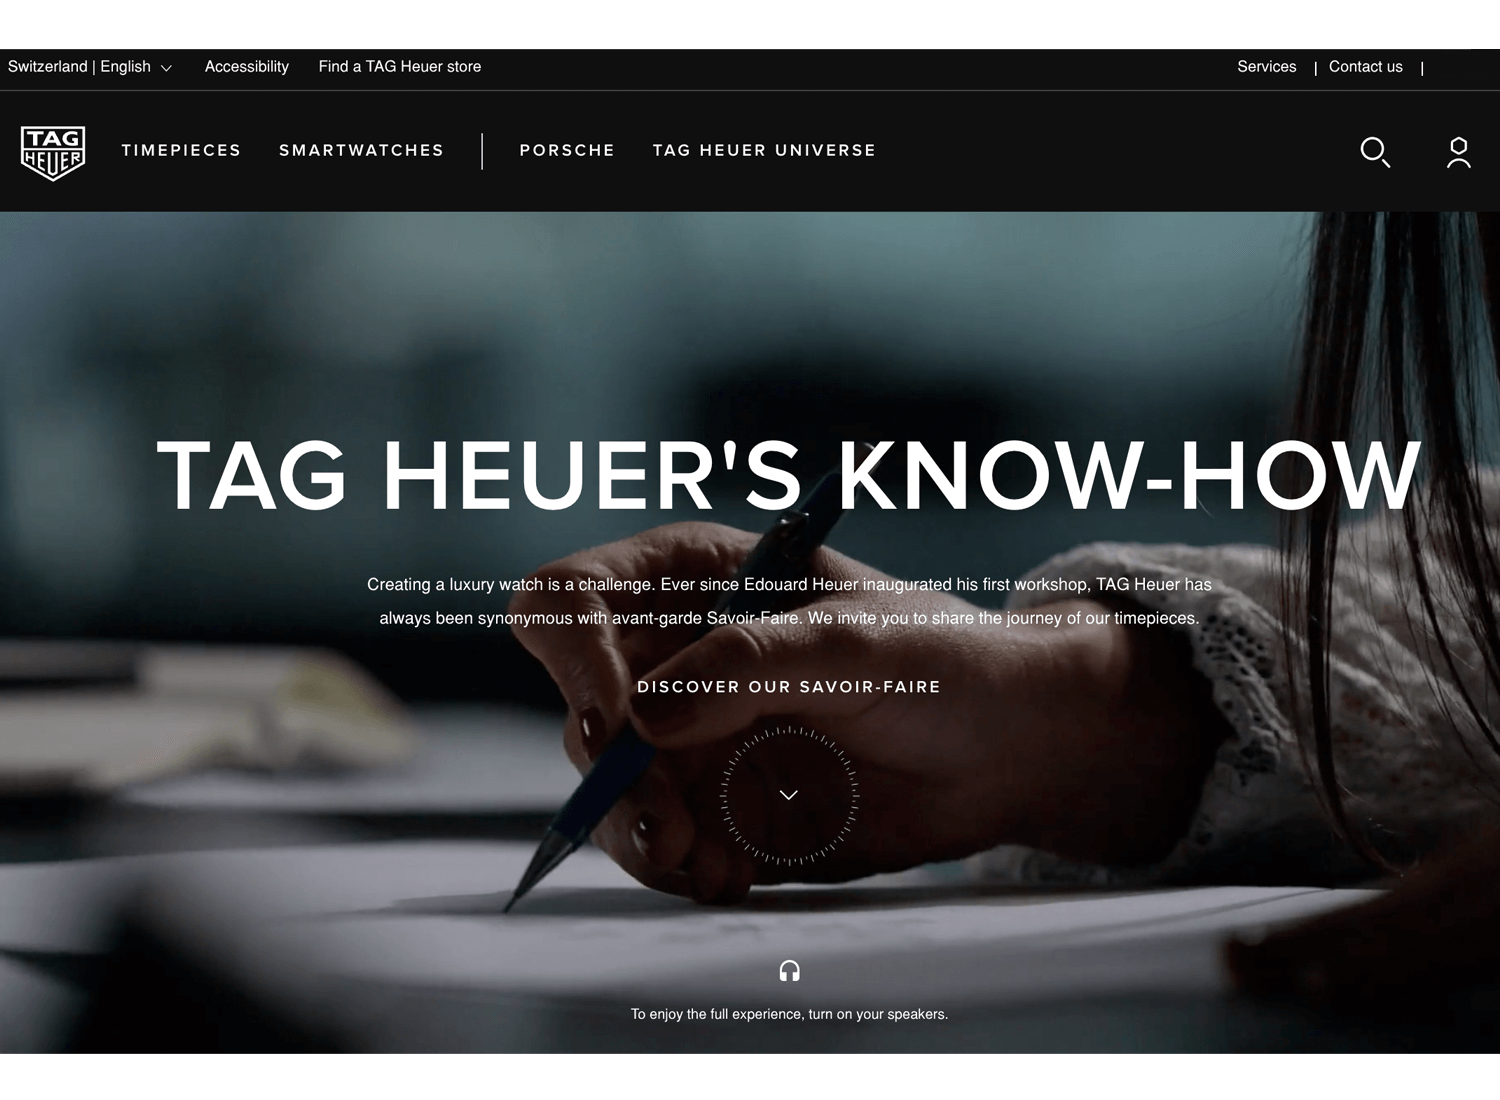 Website backgrounds - Tag Heuer